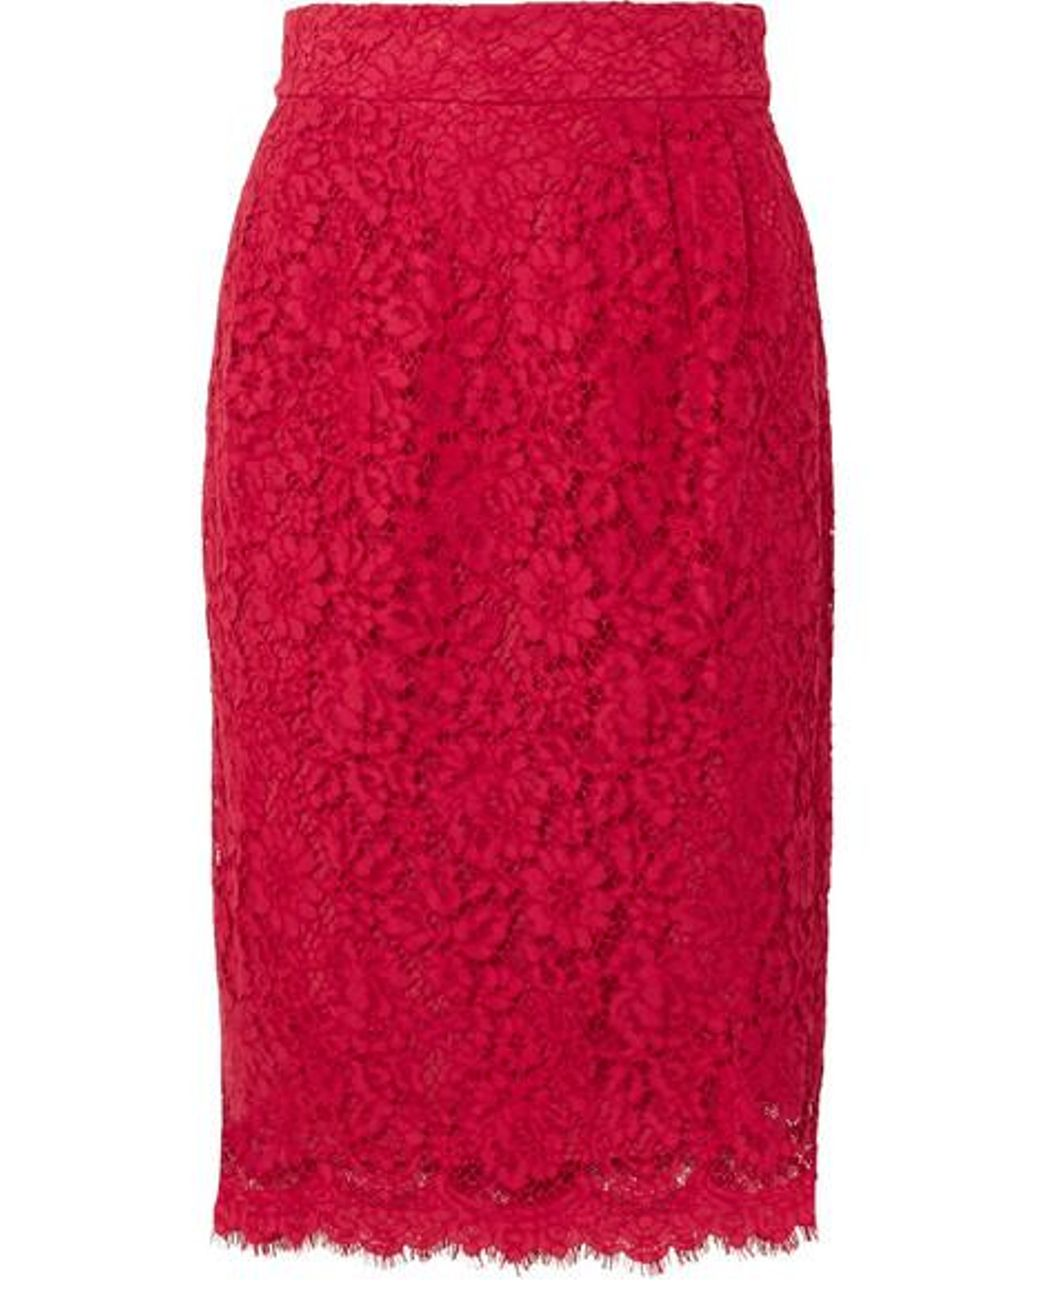 de2e7a3b7d J.Crew Lace Pencil Skirt in Red - Save 57% - Lyst